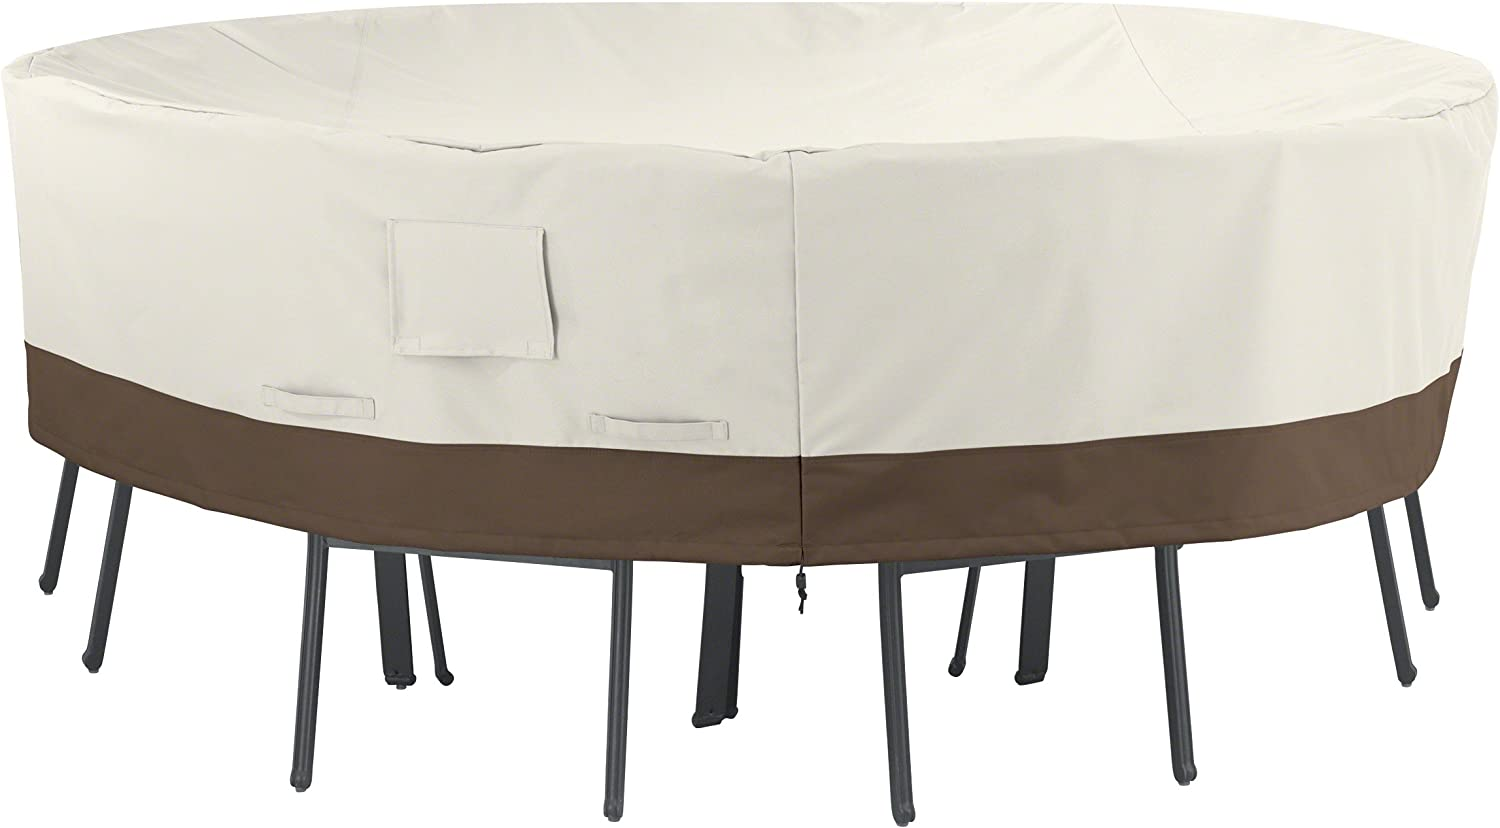 Amazon Basics Round Patio Table and Chair Set Cover, Large